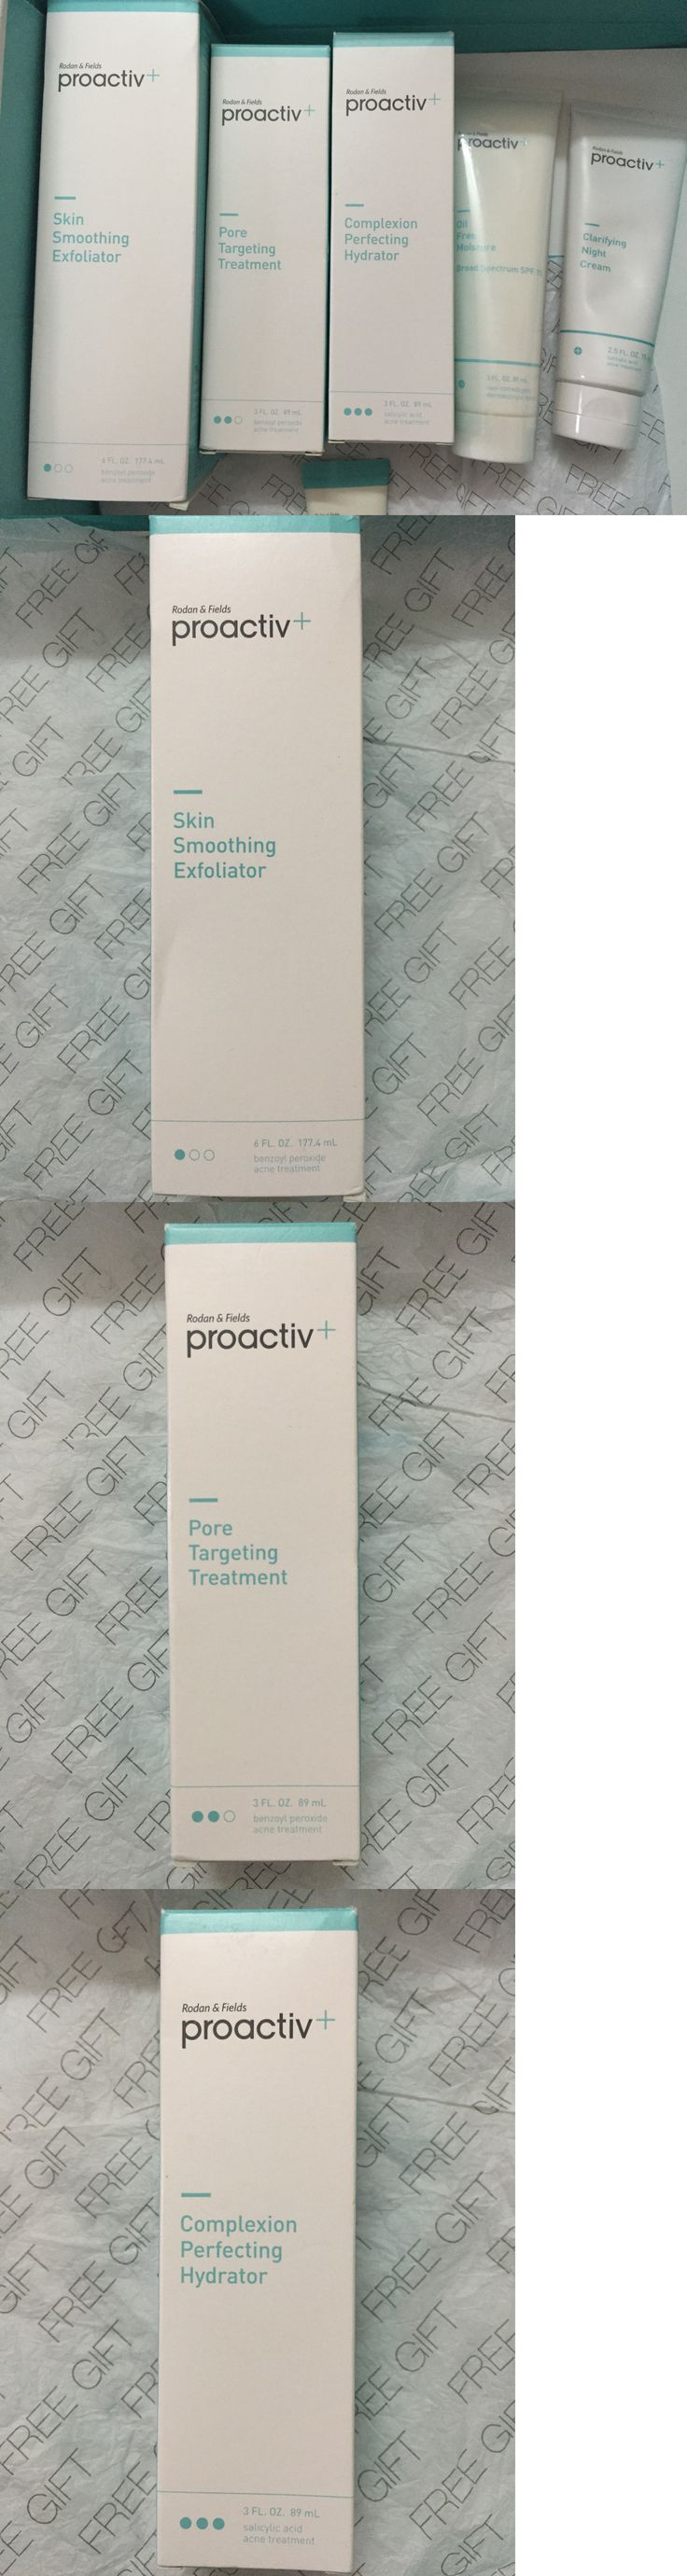 Acne and Blemish Treatments: Proactiv Plus Complete Kit 90 Day Supply, Free Gifts, Free Shipping -> BUY IT NOW ONLY: $36 on eBay!